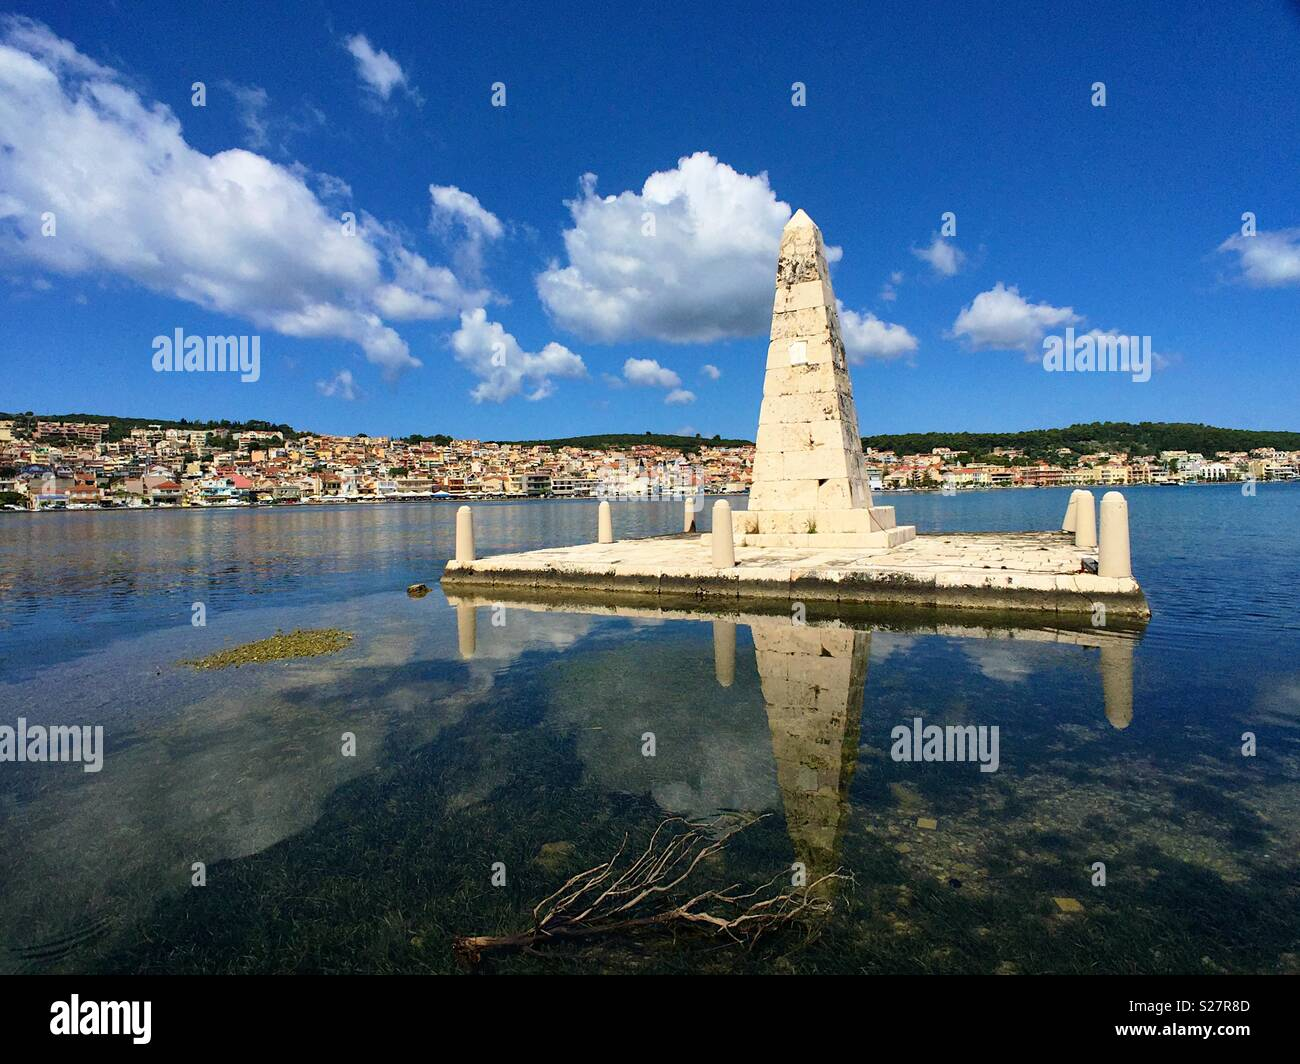 View of Argostoli Kefalonia from the Drepano bridge showing a stone column built by the British to celebrate their presence - Stock Image